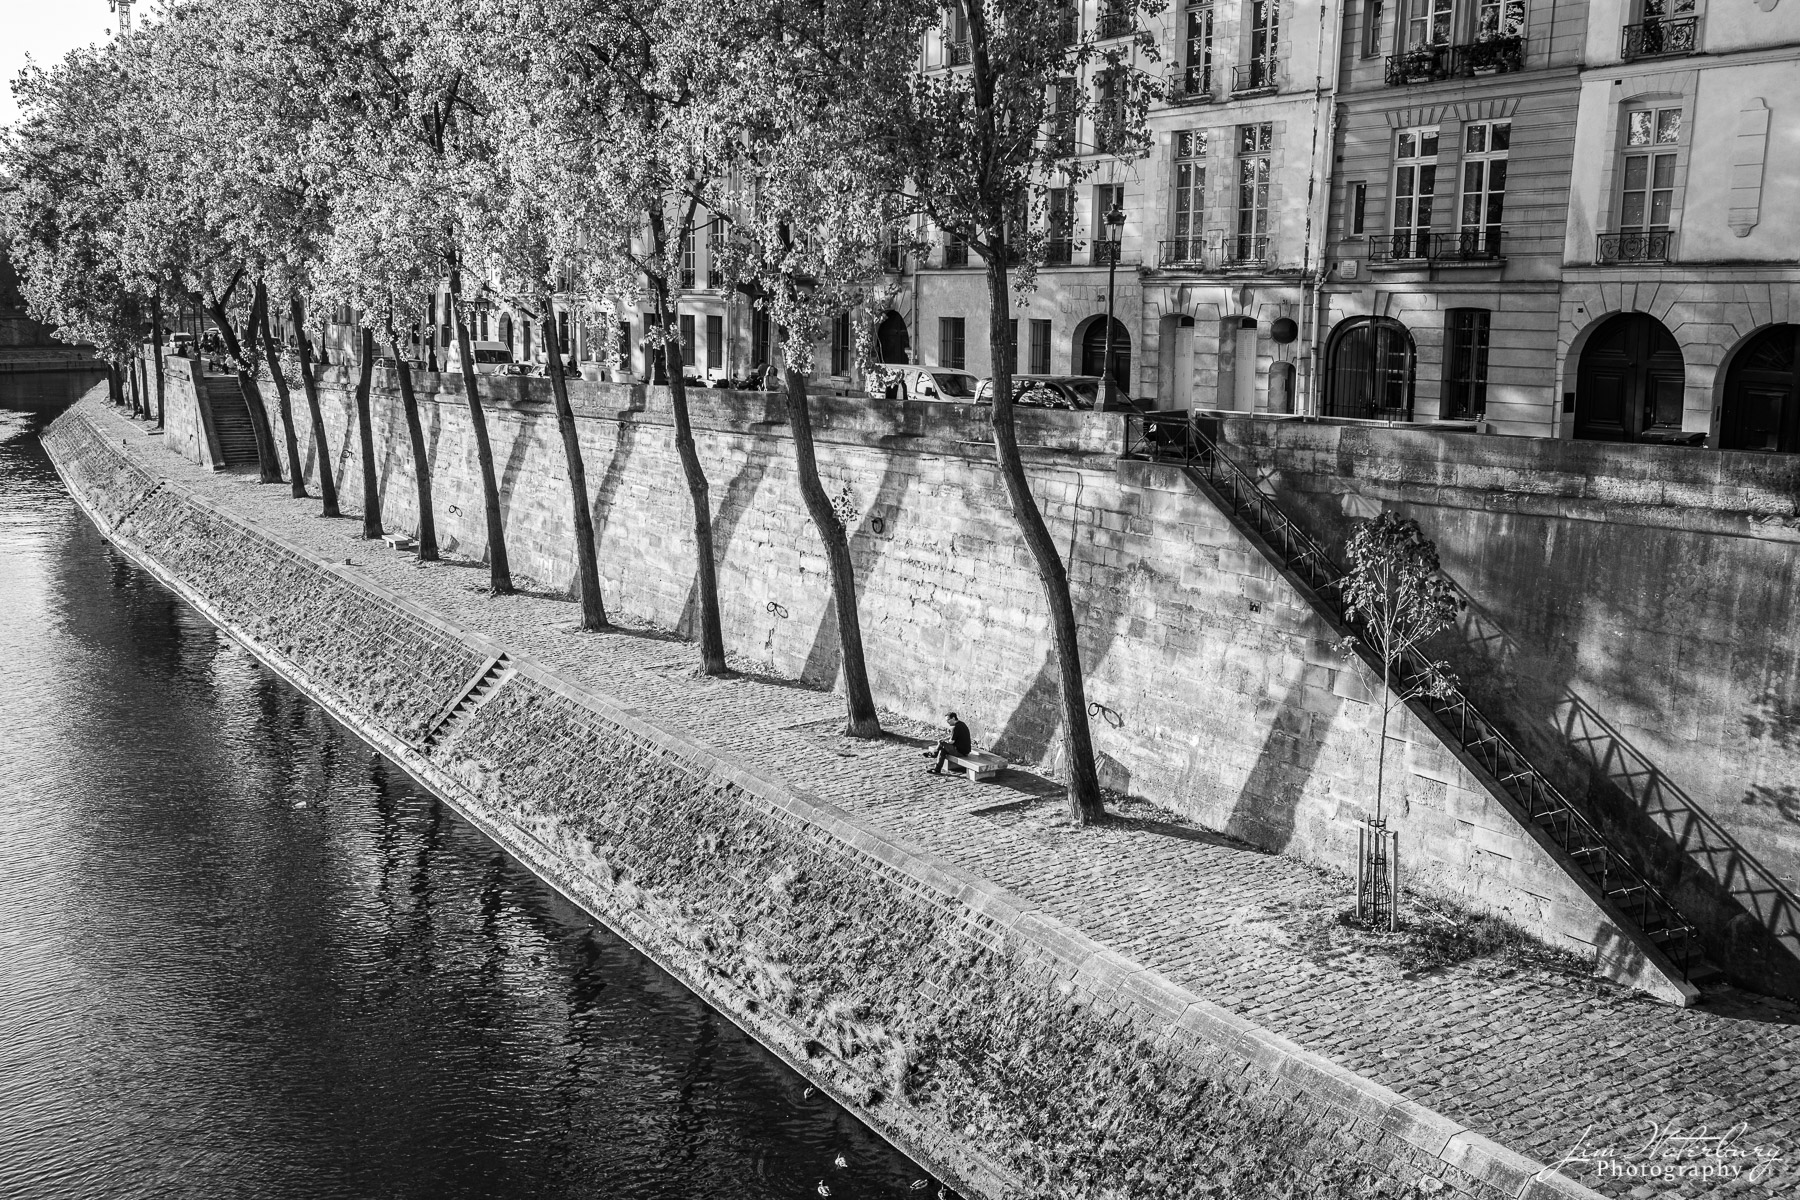 A lone gentlemen relaxes on a bench along the quai of the Seine on Ile St. Louis, Paris. Black & white.